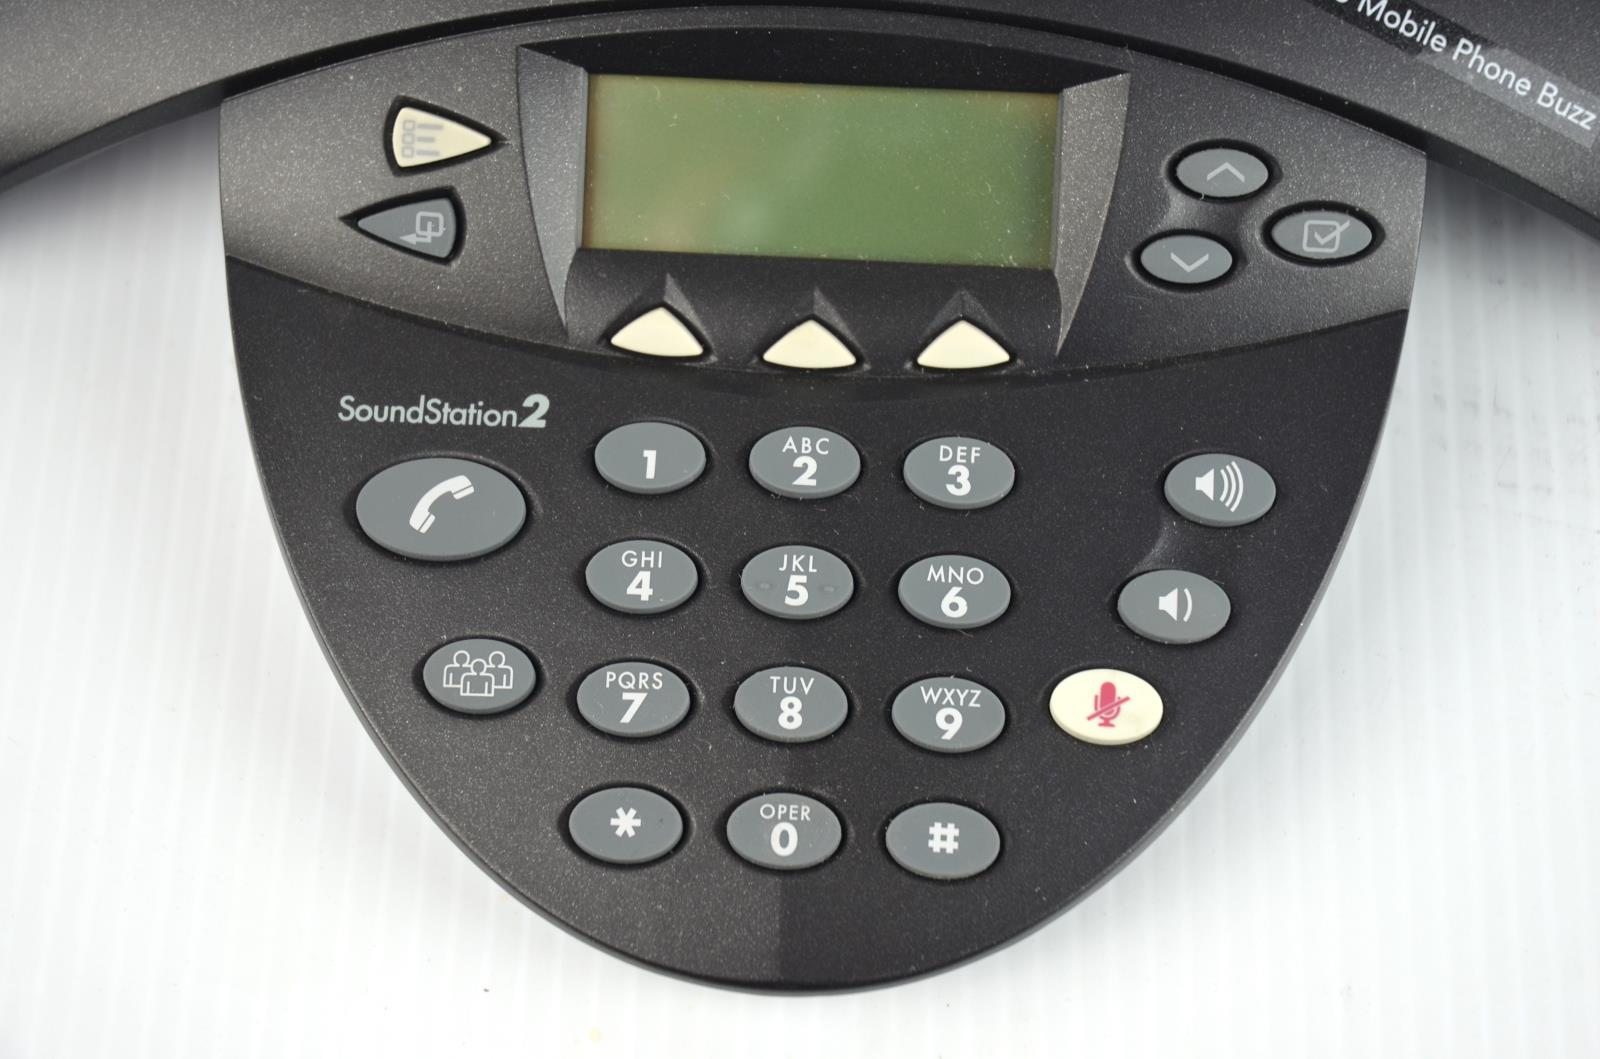 polycom soundstation 2 2201 manual